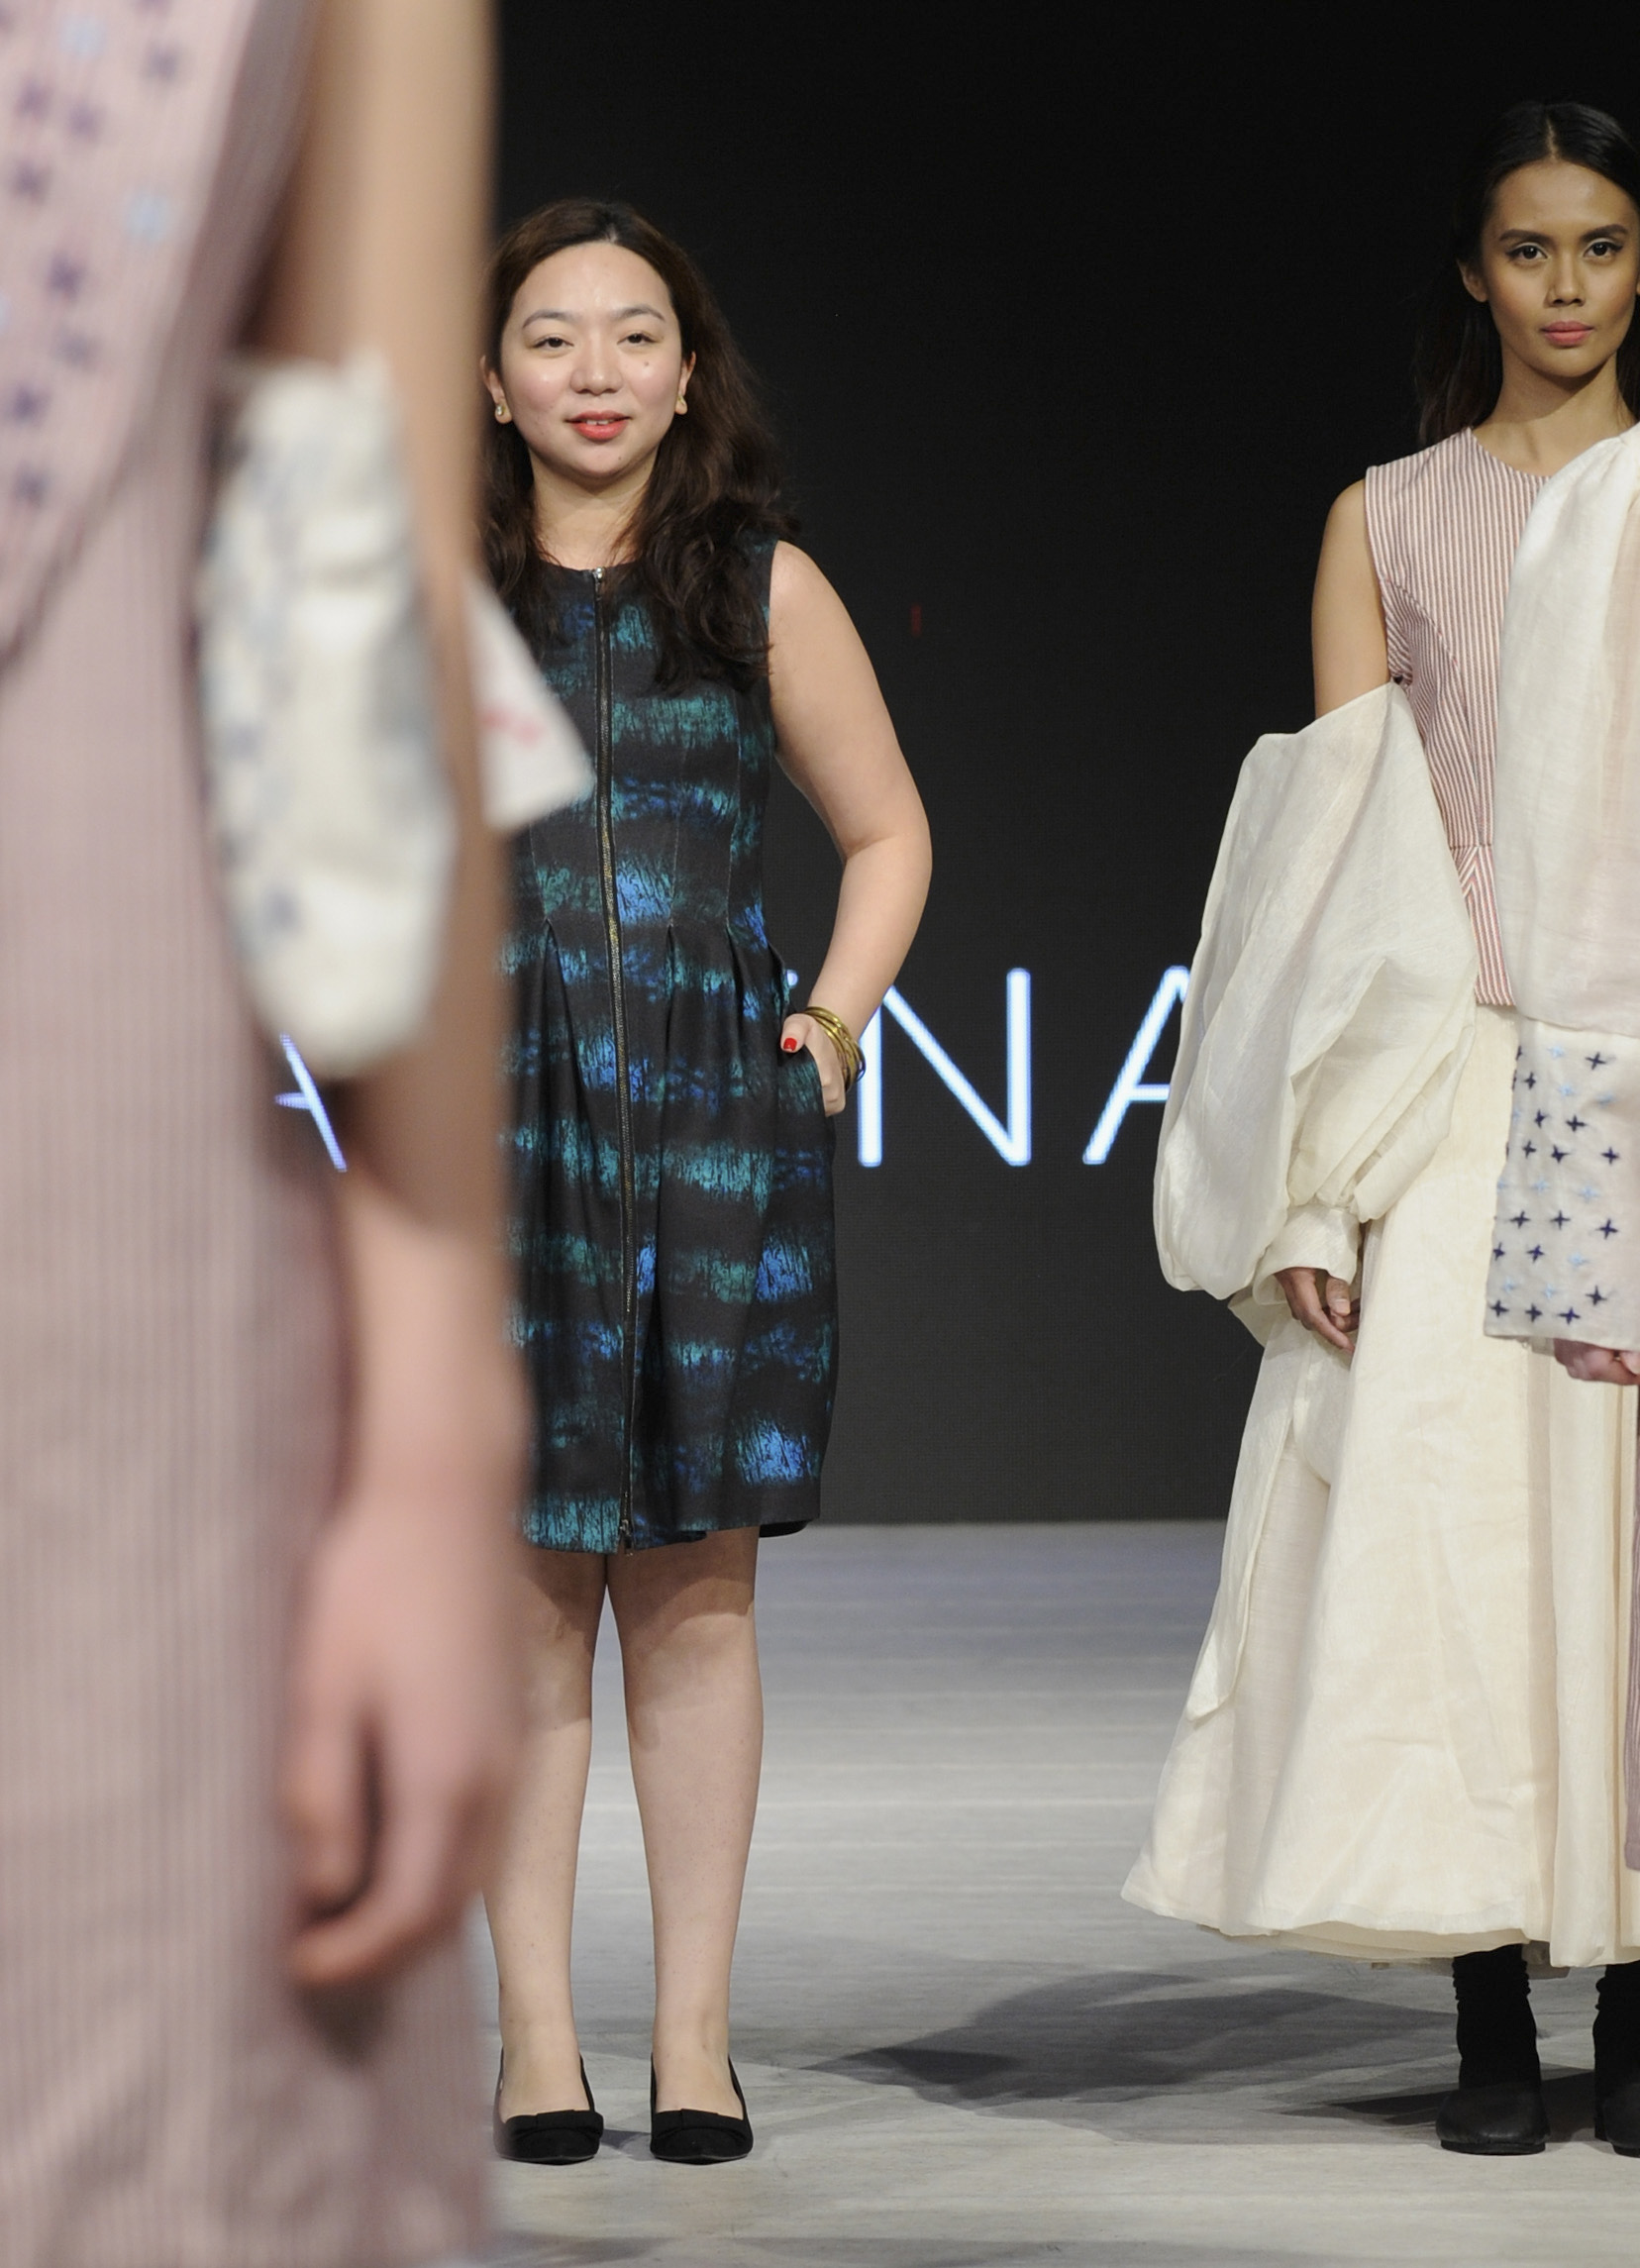 VANCOUVER, BC - MARCH 23:  Designer Gabbie Sarenas on the runway at Vancouver Fashion Week Fall/Winter 2017 at Chinese Cultural Centre of Greater Vancouver on March 23, 2017 in Vancouver, Canada.  (Photo by Arun Nevader/WireImage) *** Local Caption *** Gabbie Sarenas